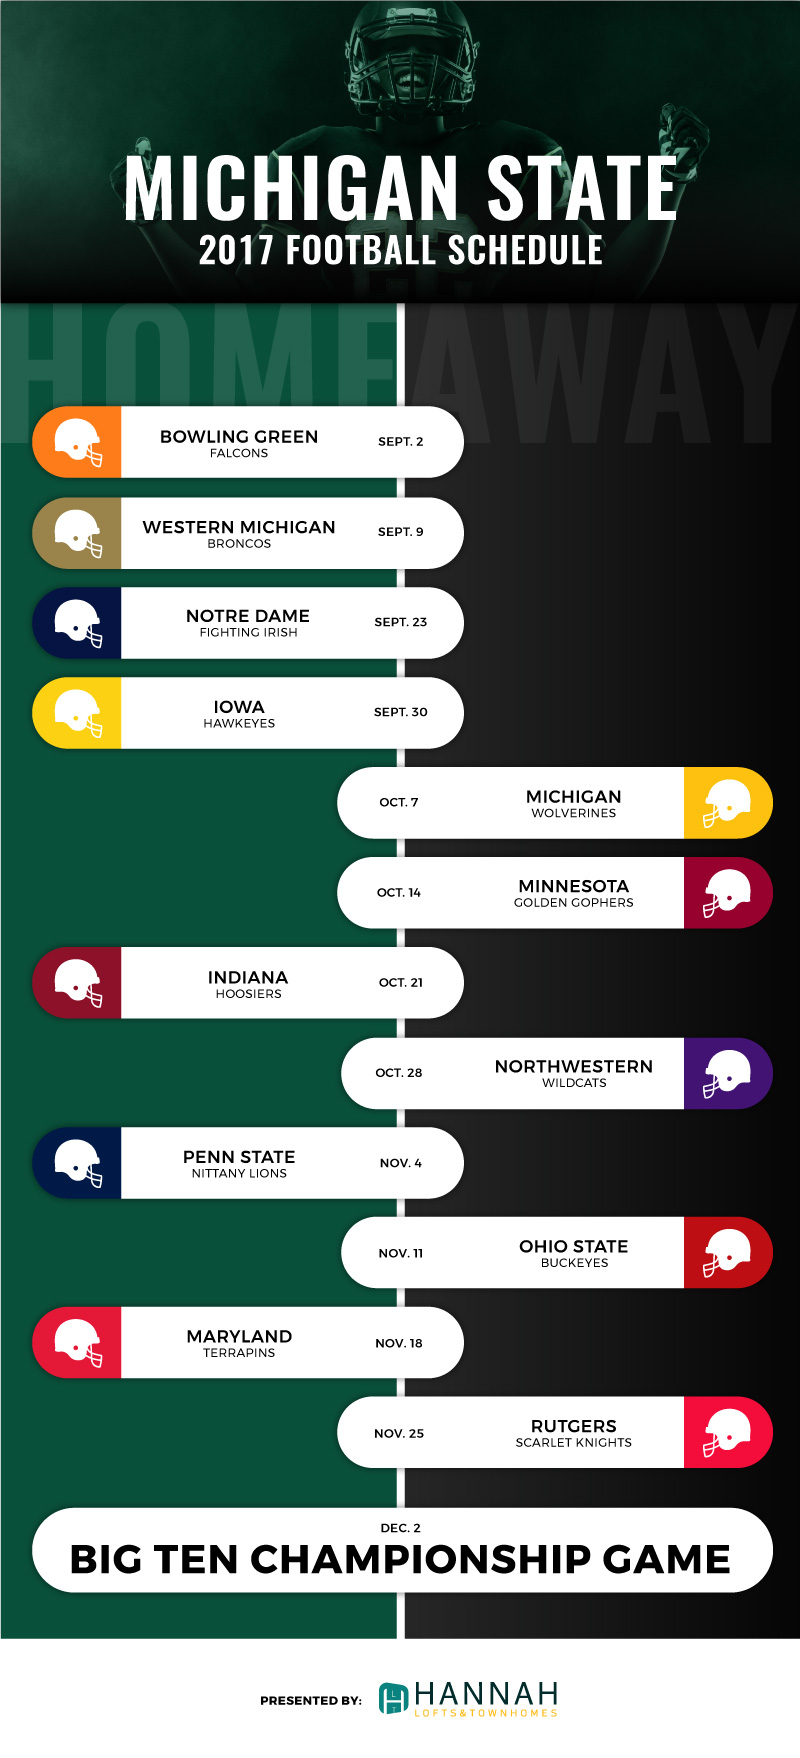 Michigan State University 2017 Football Schedule Infographic